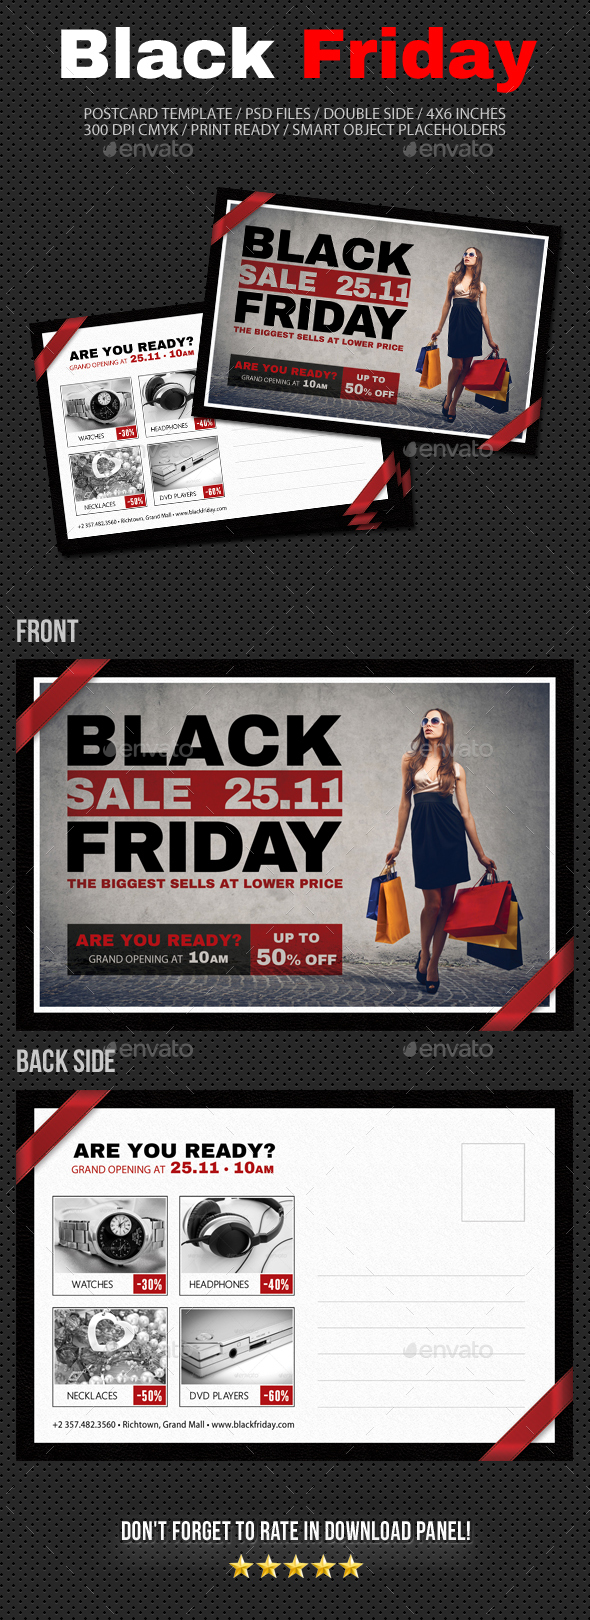 Black Friday Postcard Template V04 - Cards & Invites Print Templates